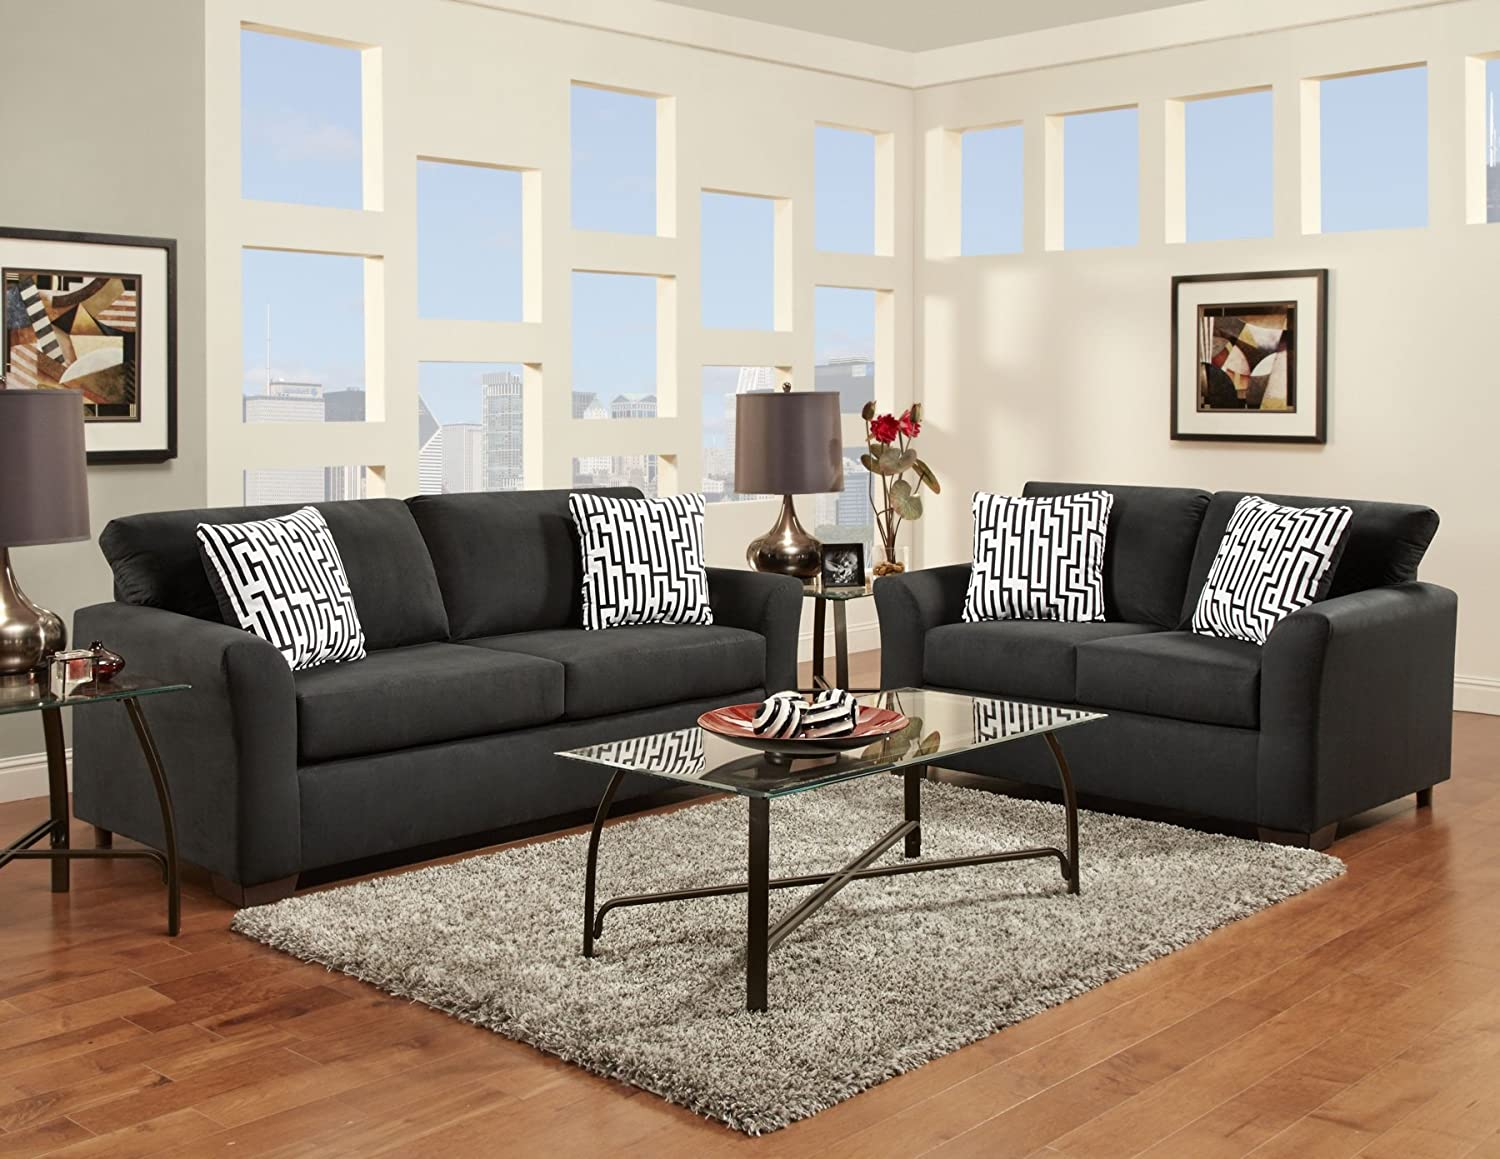 Roundhill Furniture Mazemic Microfiber 2 Seater Sofa and Loveseat Set with Pillows - Black